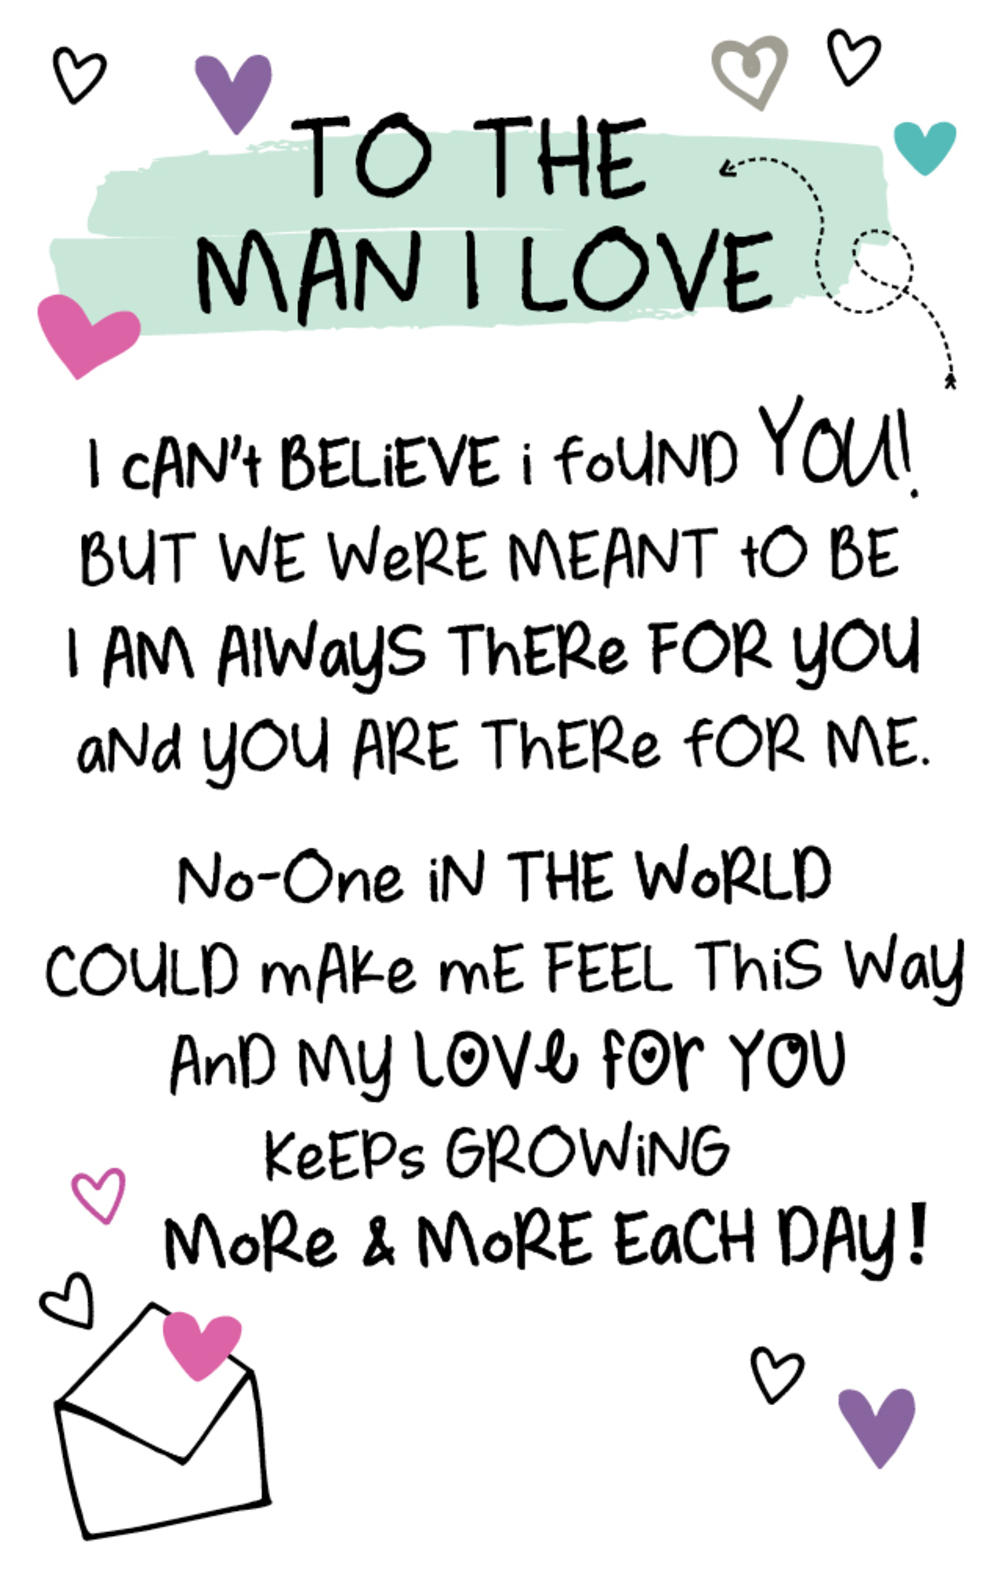 To The Man I Love Inspired Words Keepsake Credit Card & Envelope